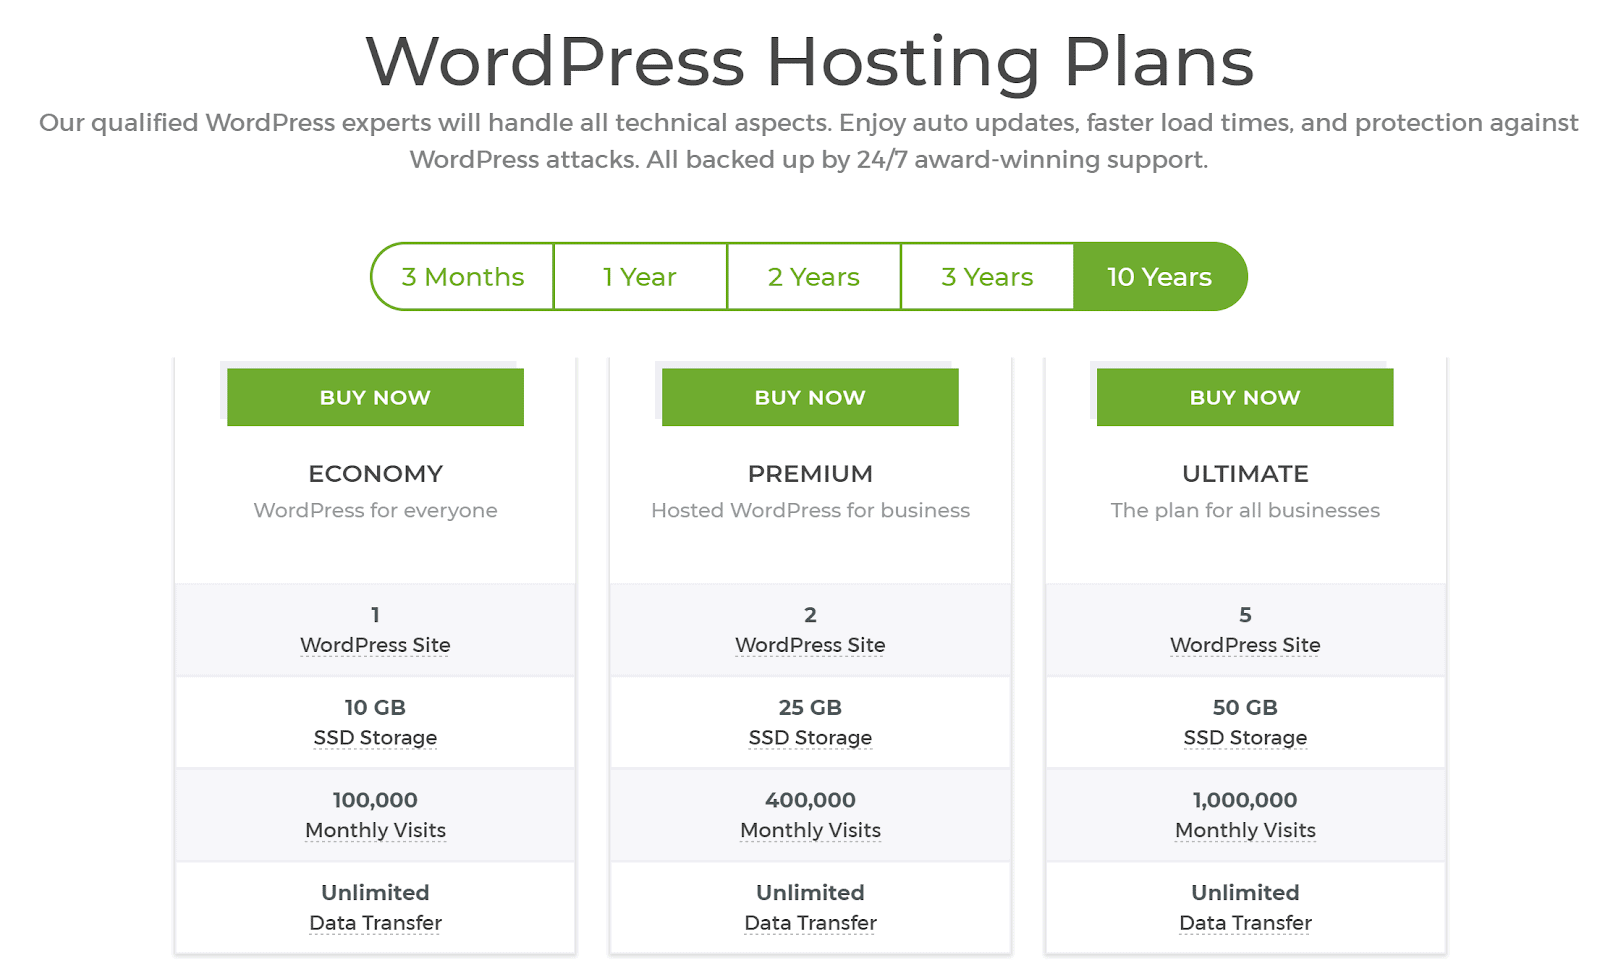 CrazyDomains' WordPress hosting plans